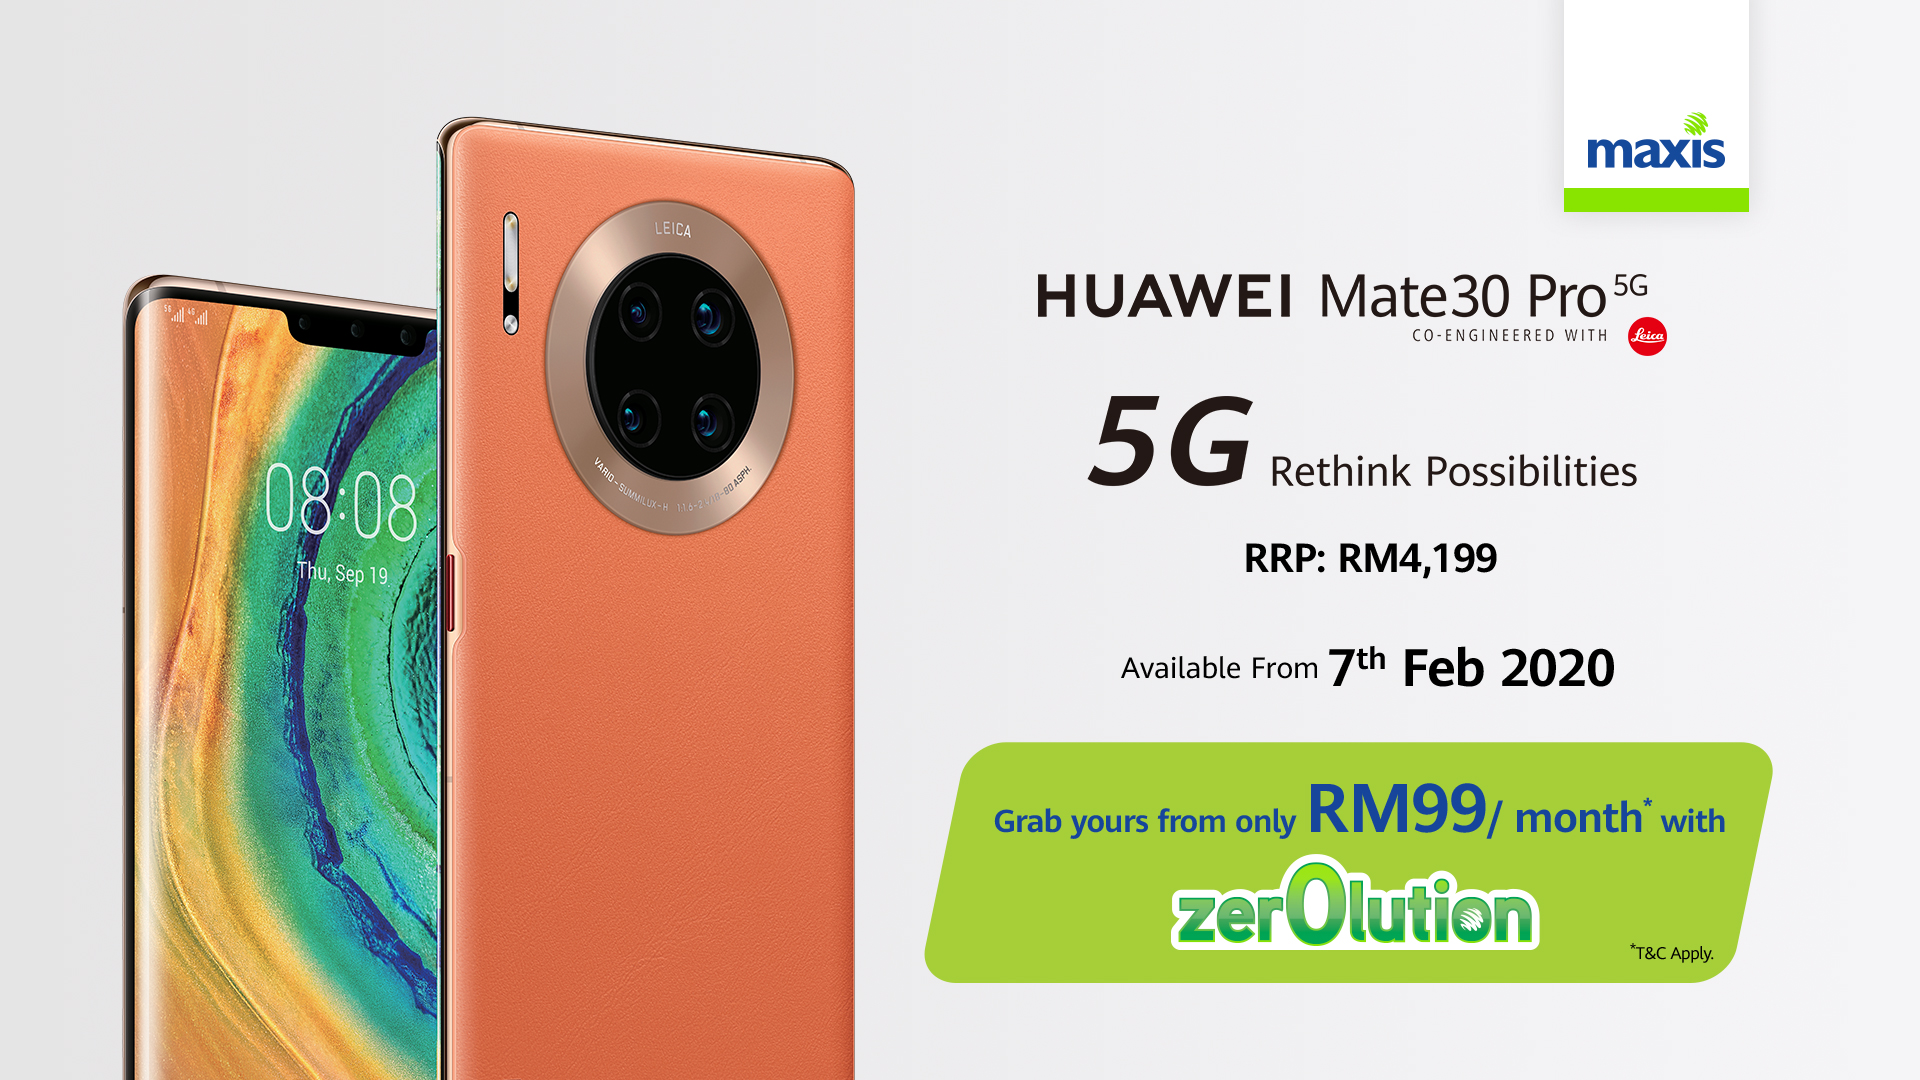 Mate30 Pro 5G Maxis